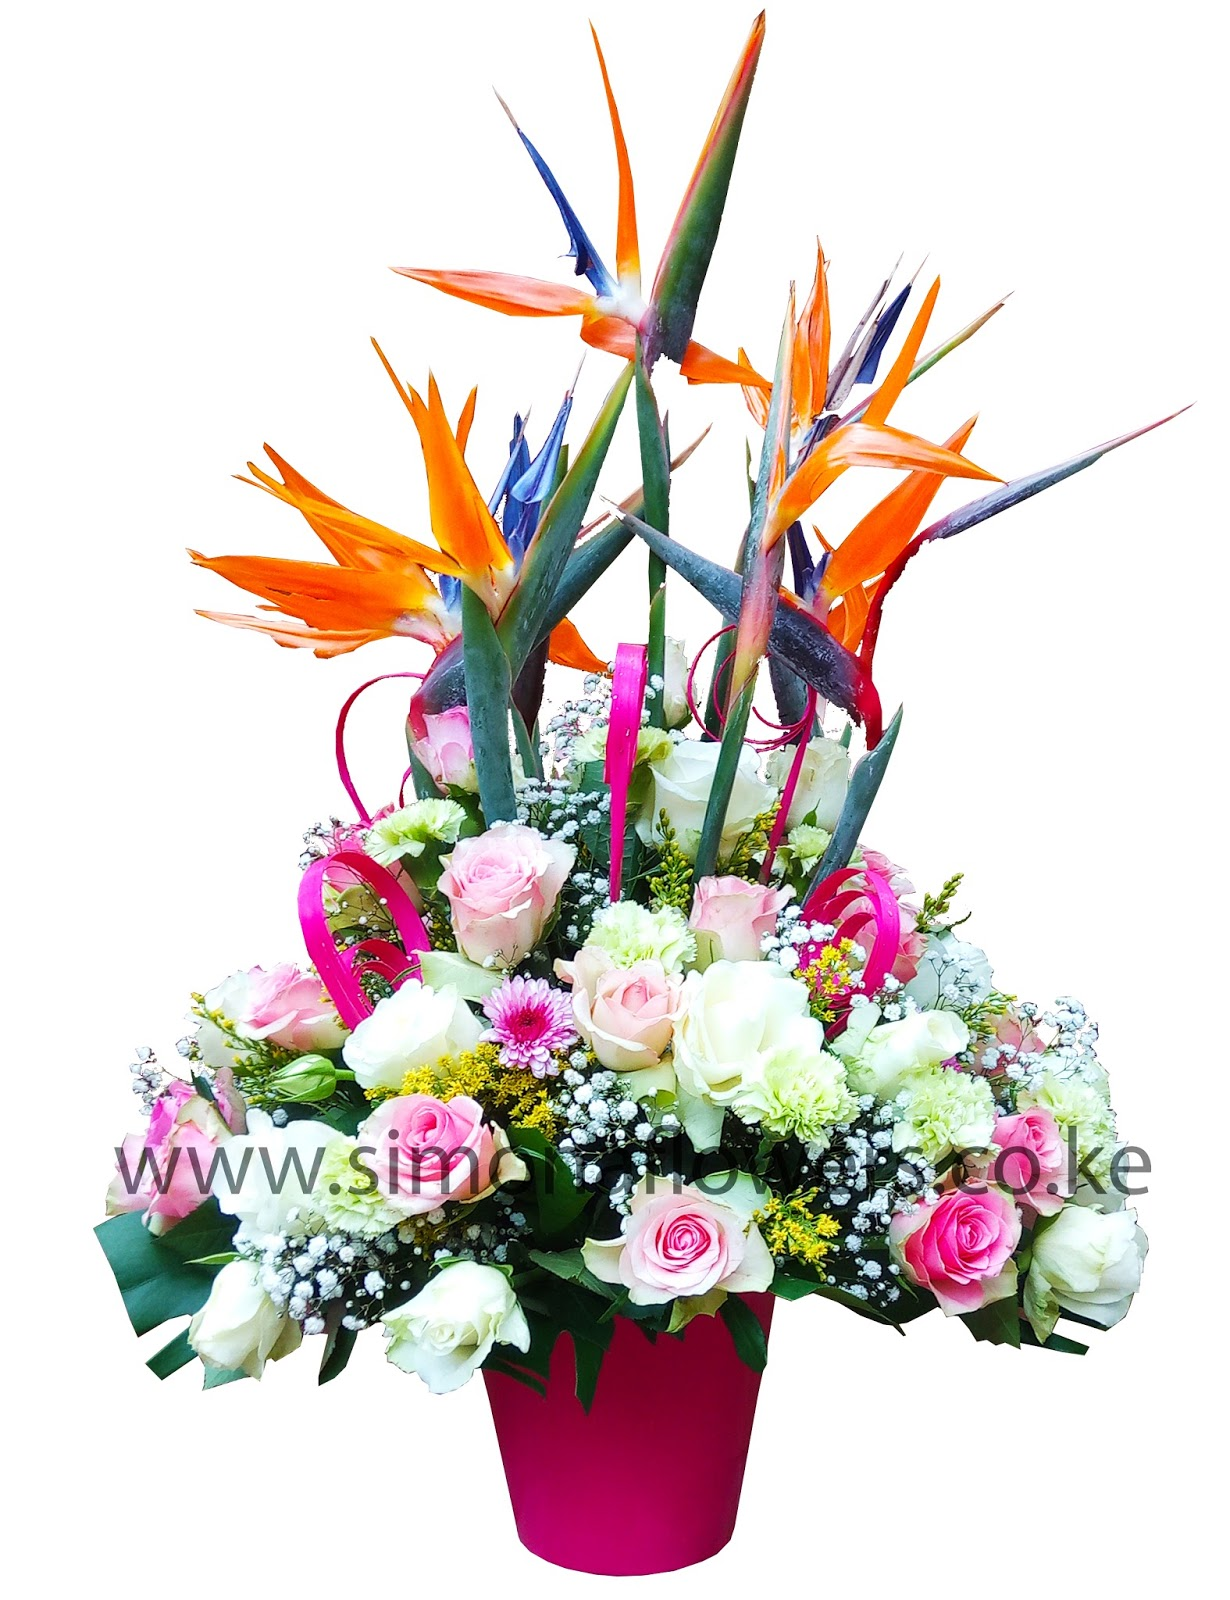 Simona flowers birthdays bouquets birthday flowers delivered make wonderful surprises so if youre looking for a beautiful birthday gift simona flowers nairobi kenya hope we can inspire izmirmasajfo